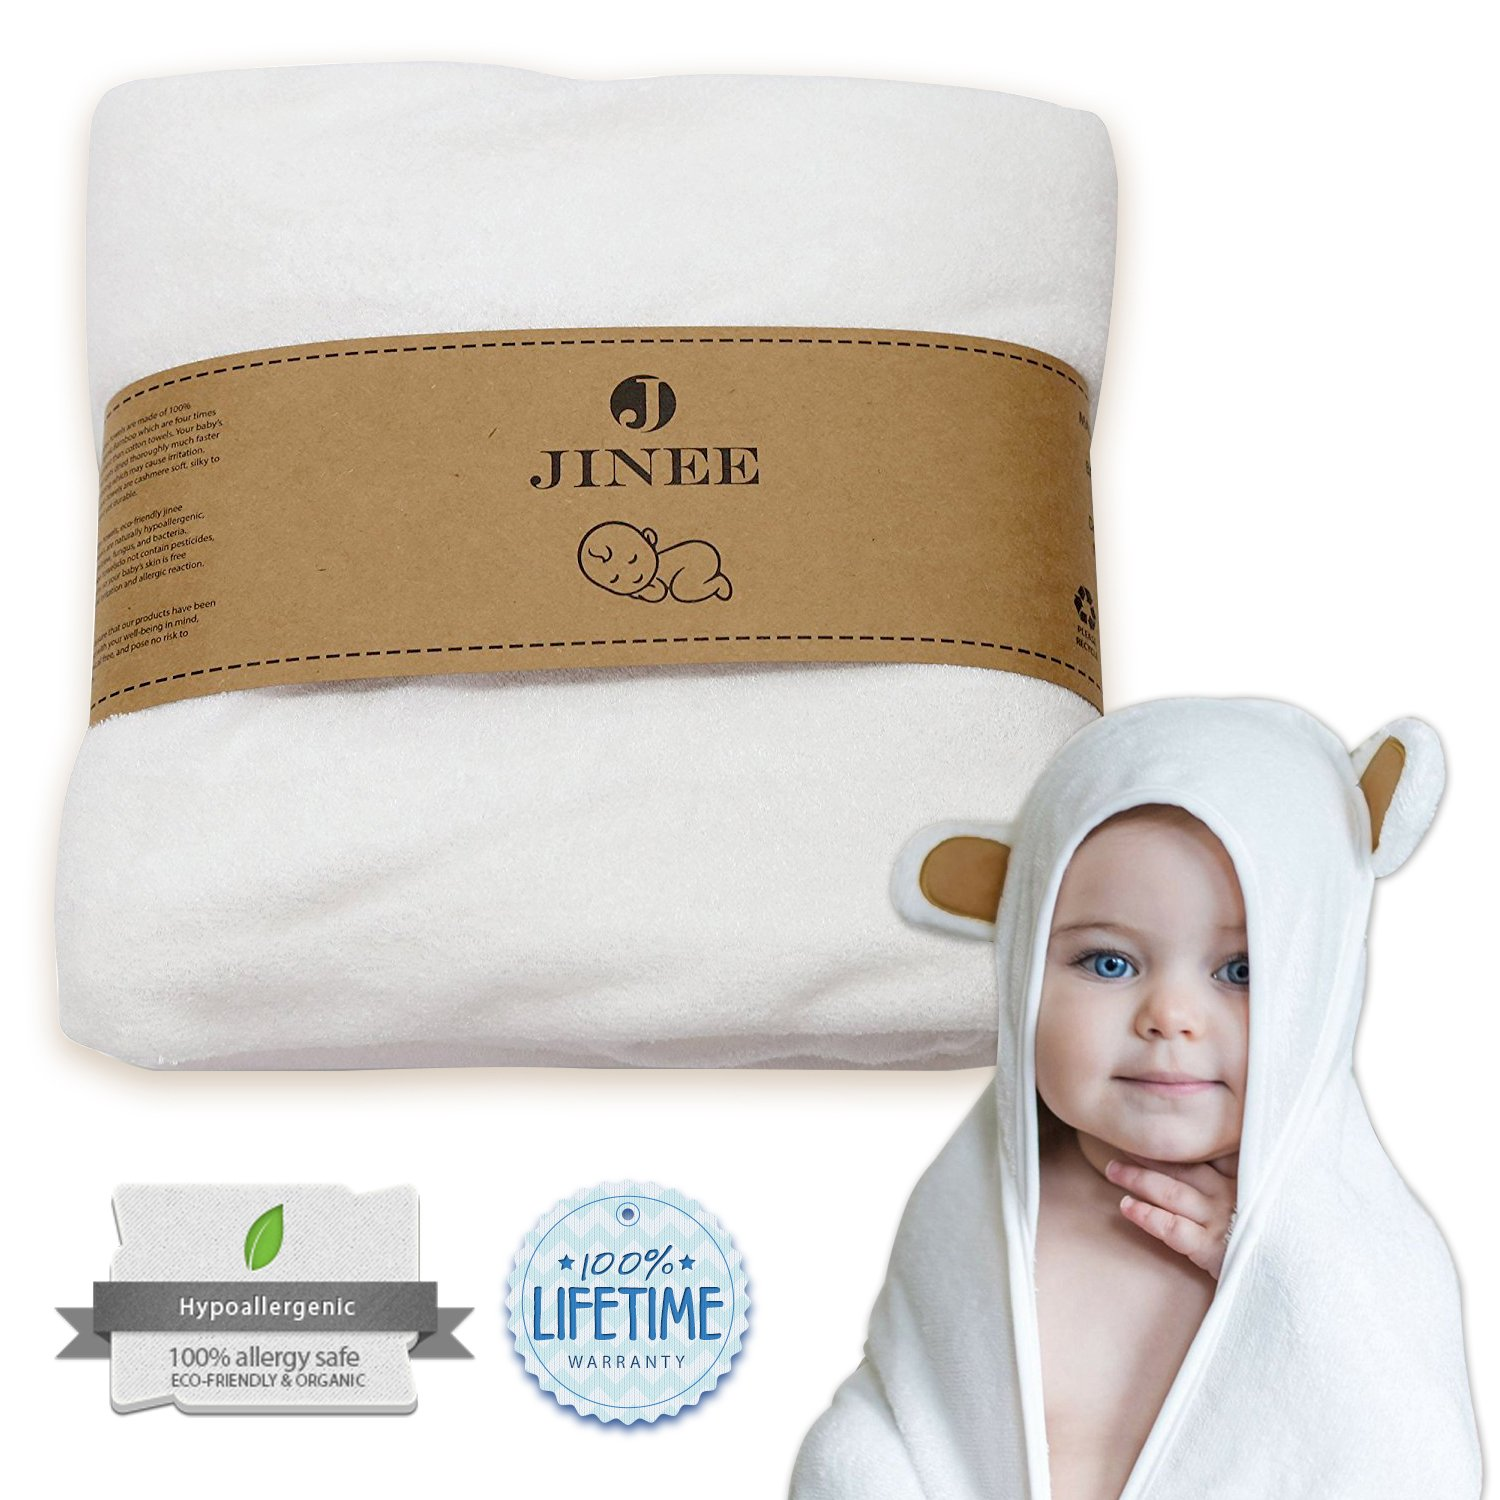 """Jinee Organic Hooded Baby Towel - Ultra Soft Natural Bamboo Towels with Hood for Boy, Girl, Infant, Newborn or Toddlers - Keeps Your Little One Dry & Warm - Hypoallergenic, Antibacterial, 35"""" x 35"""""""